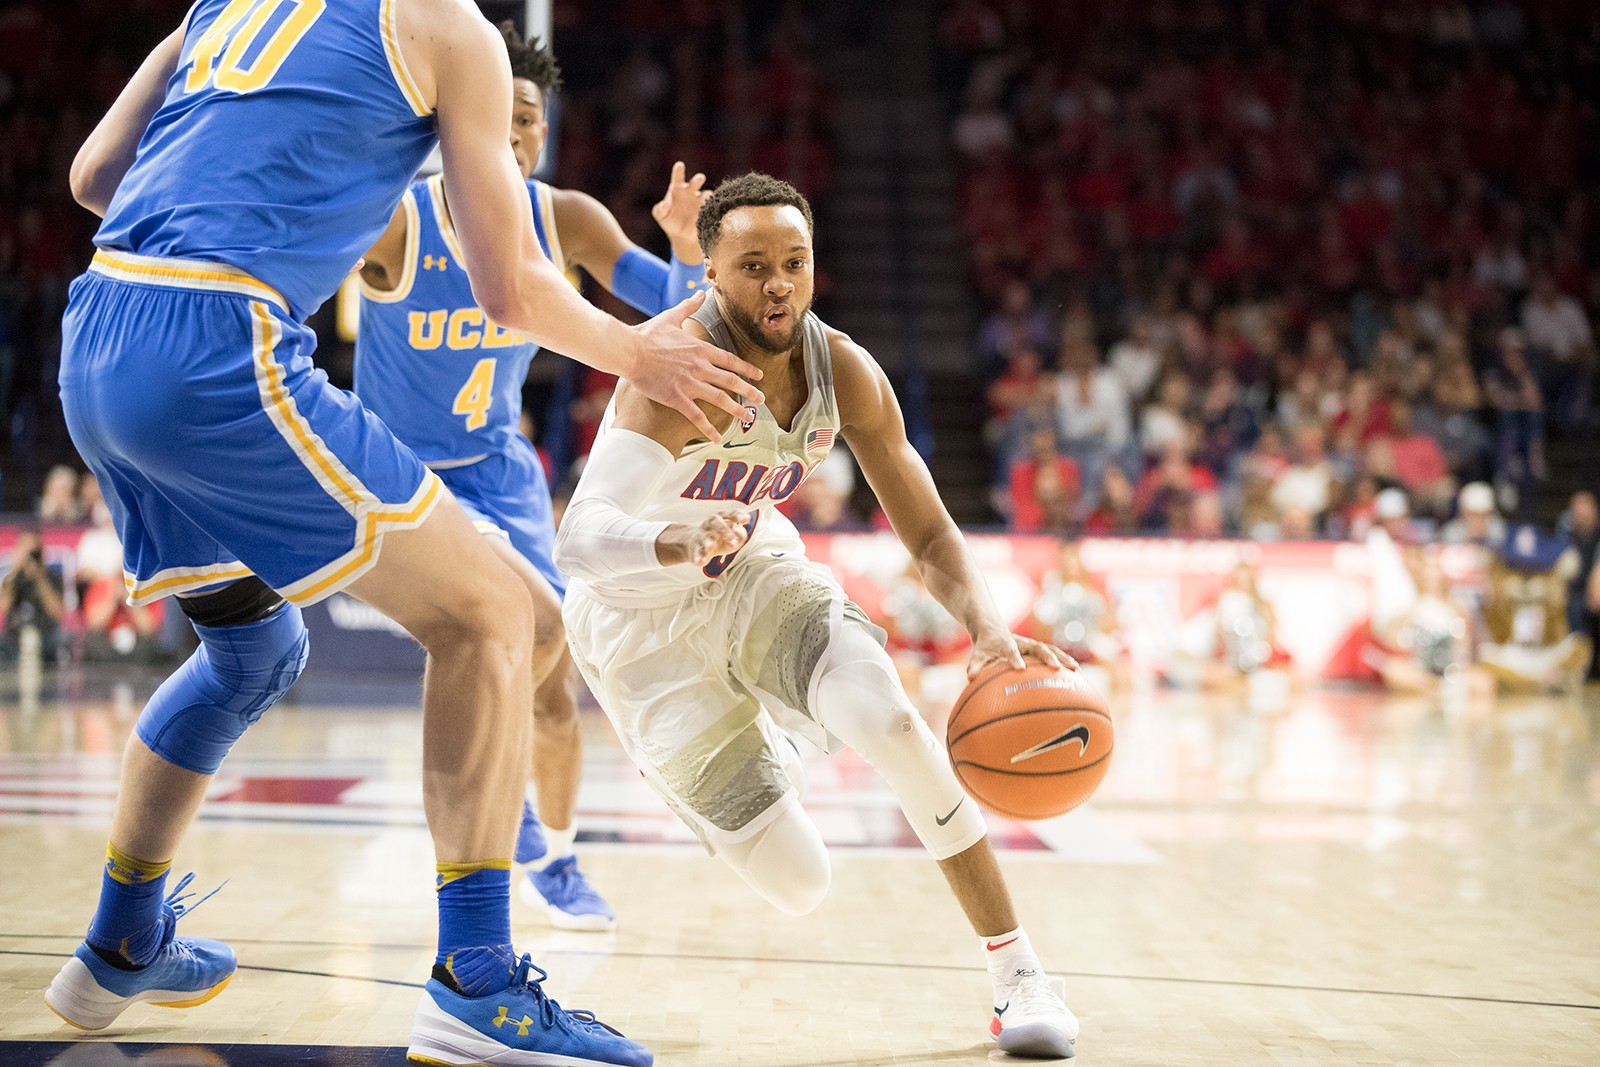 Bruins top Arizona to push into Pac-12 title hunt